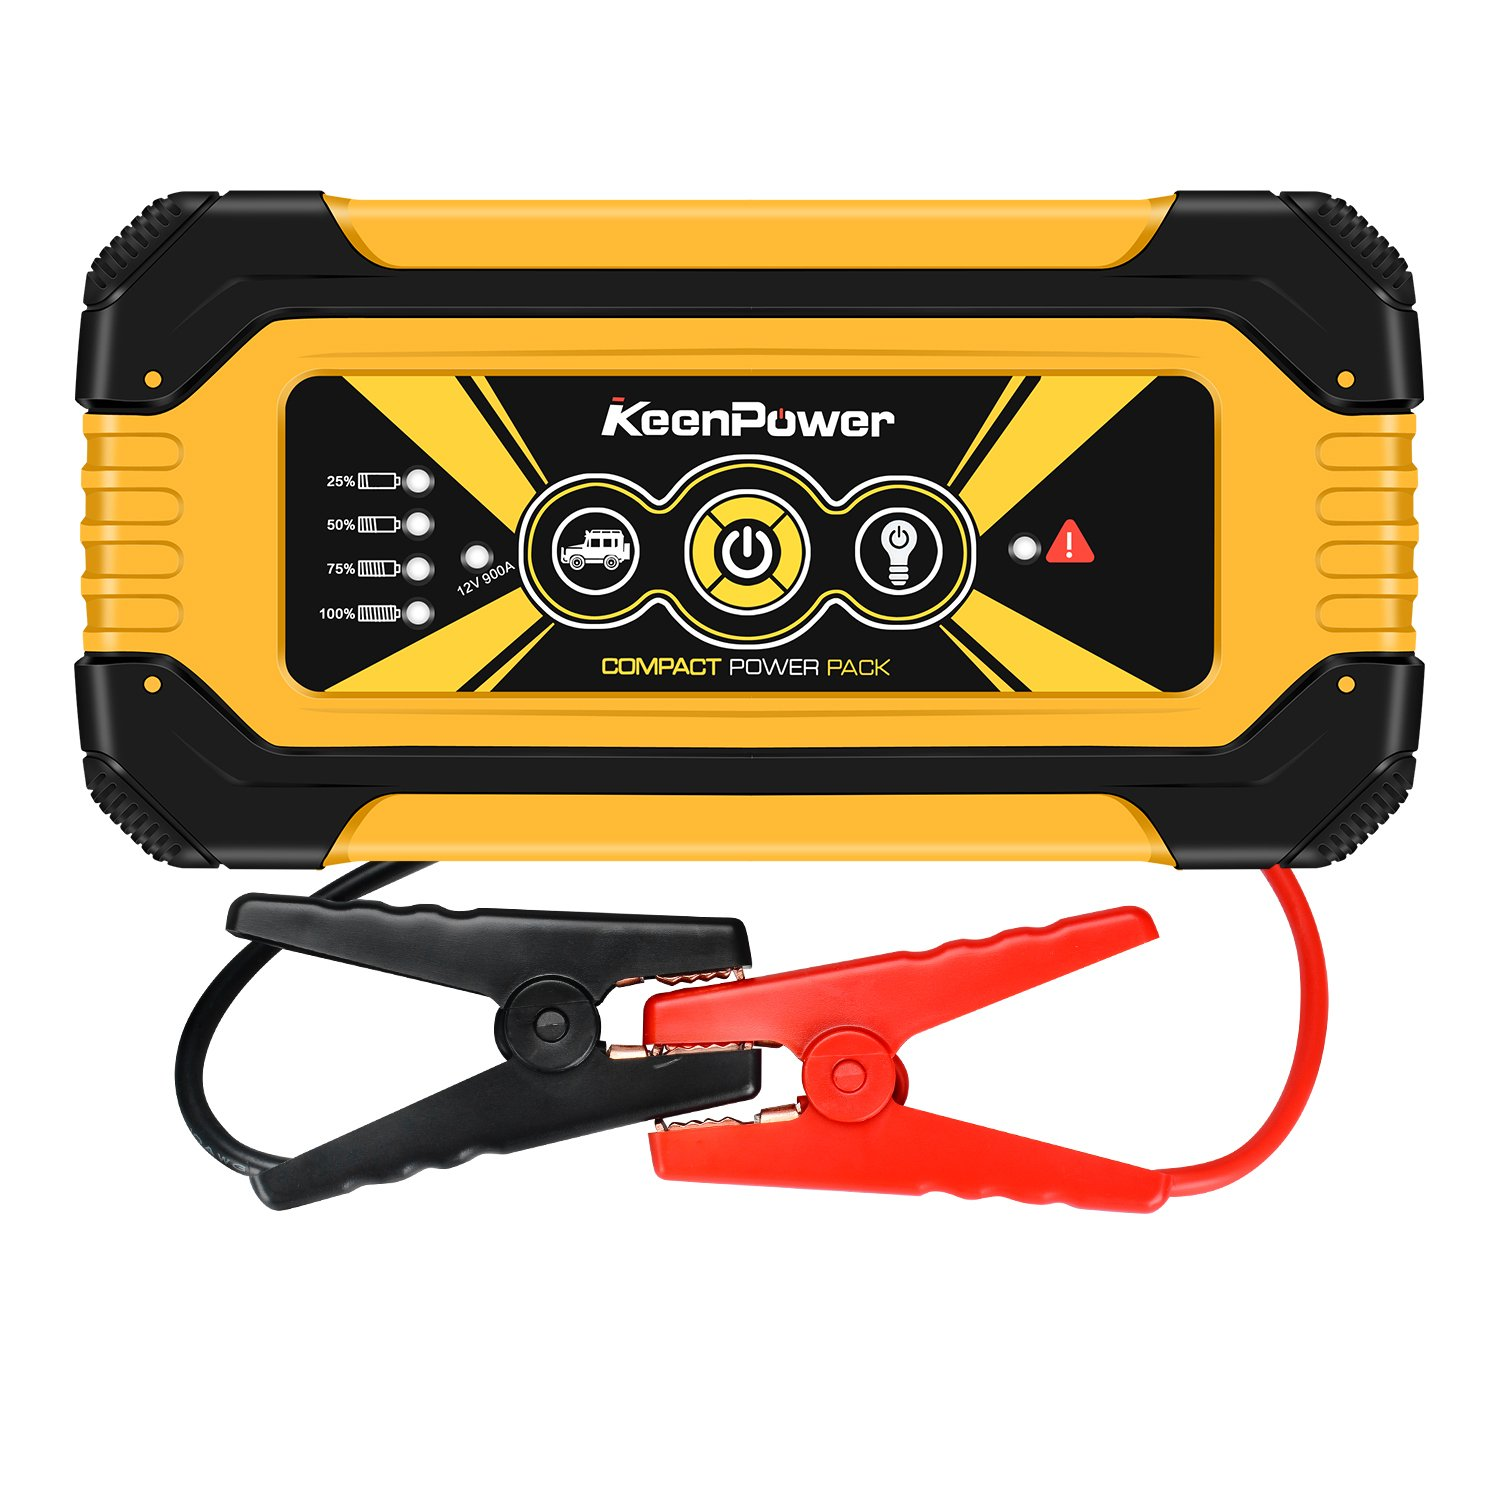 Keenpower Portable Car Jump Starter 12V Car Battery Booster Power Pack With Smart Charging Ports (RED)